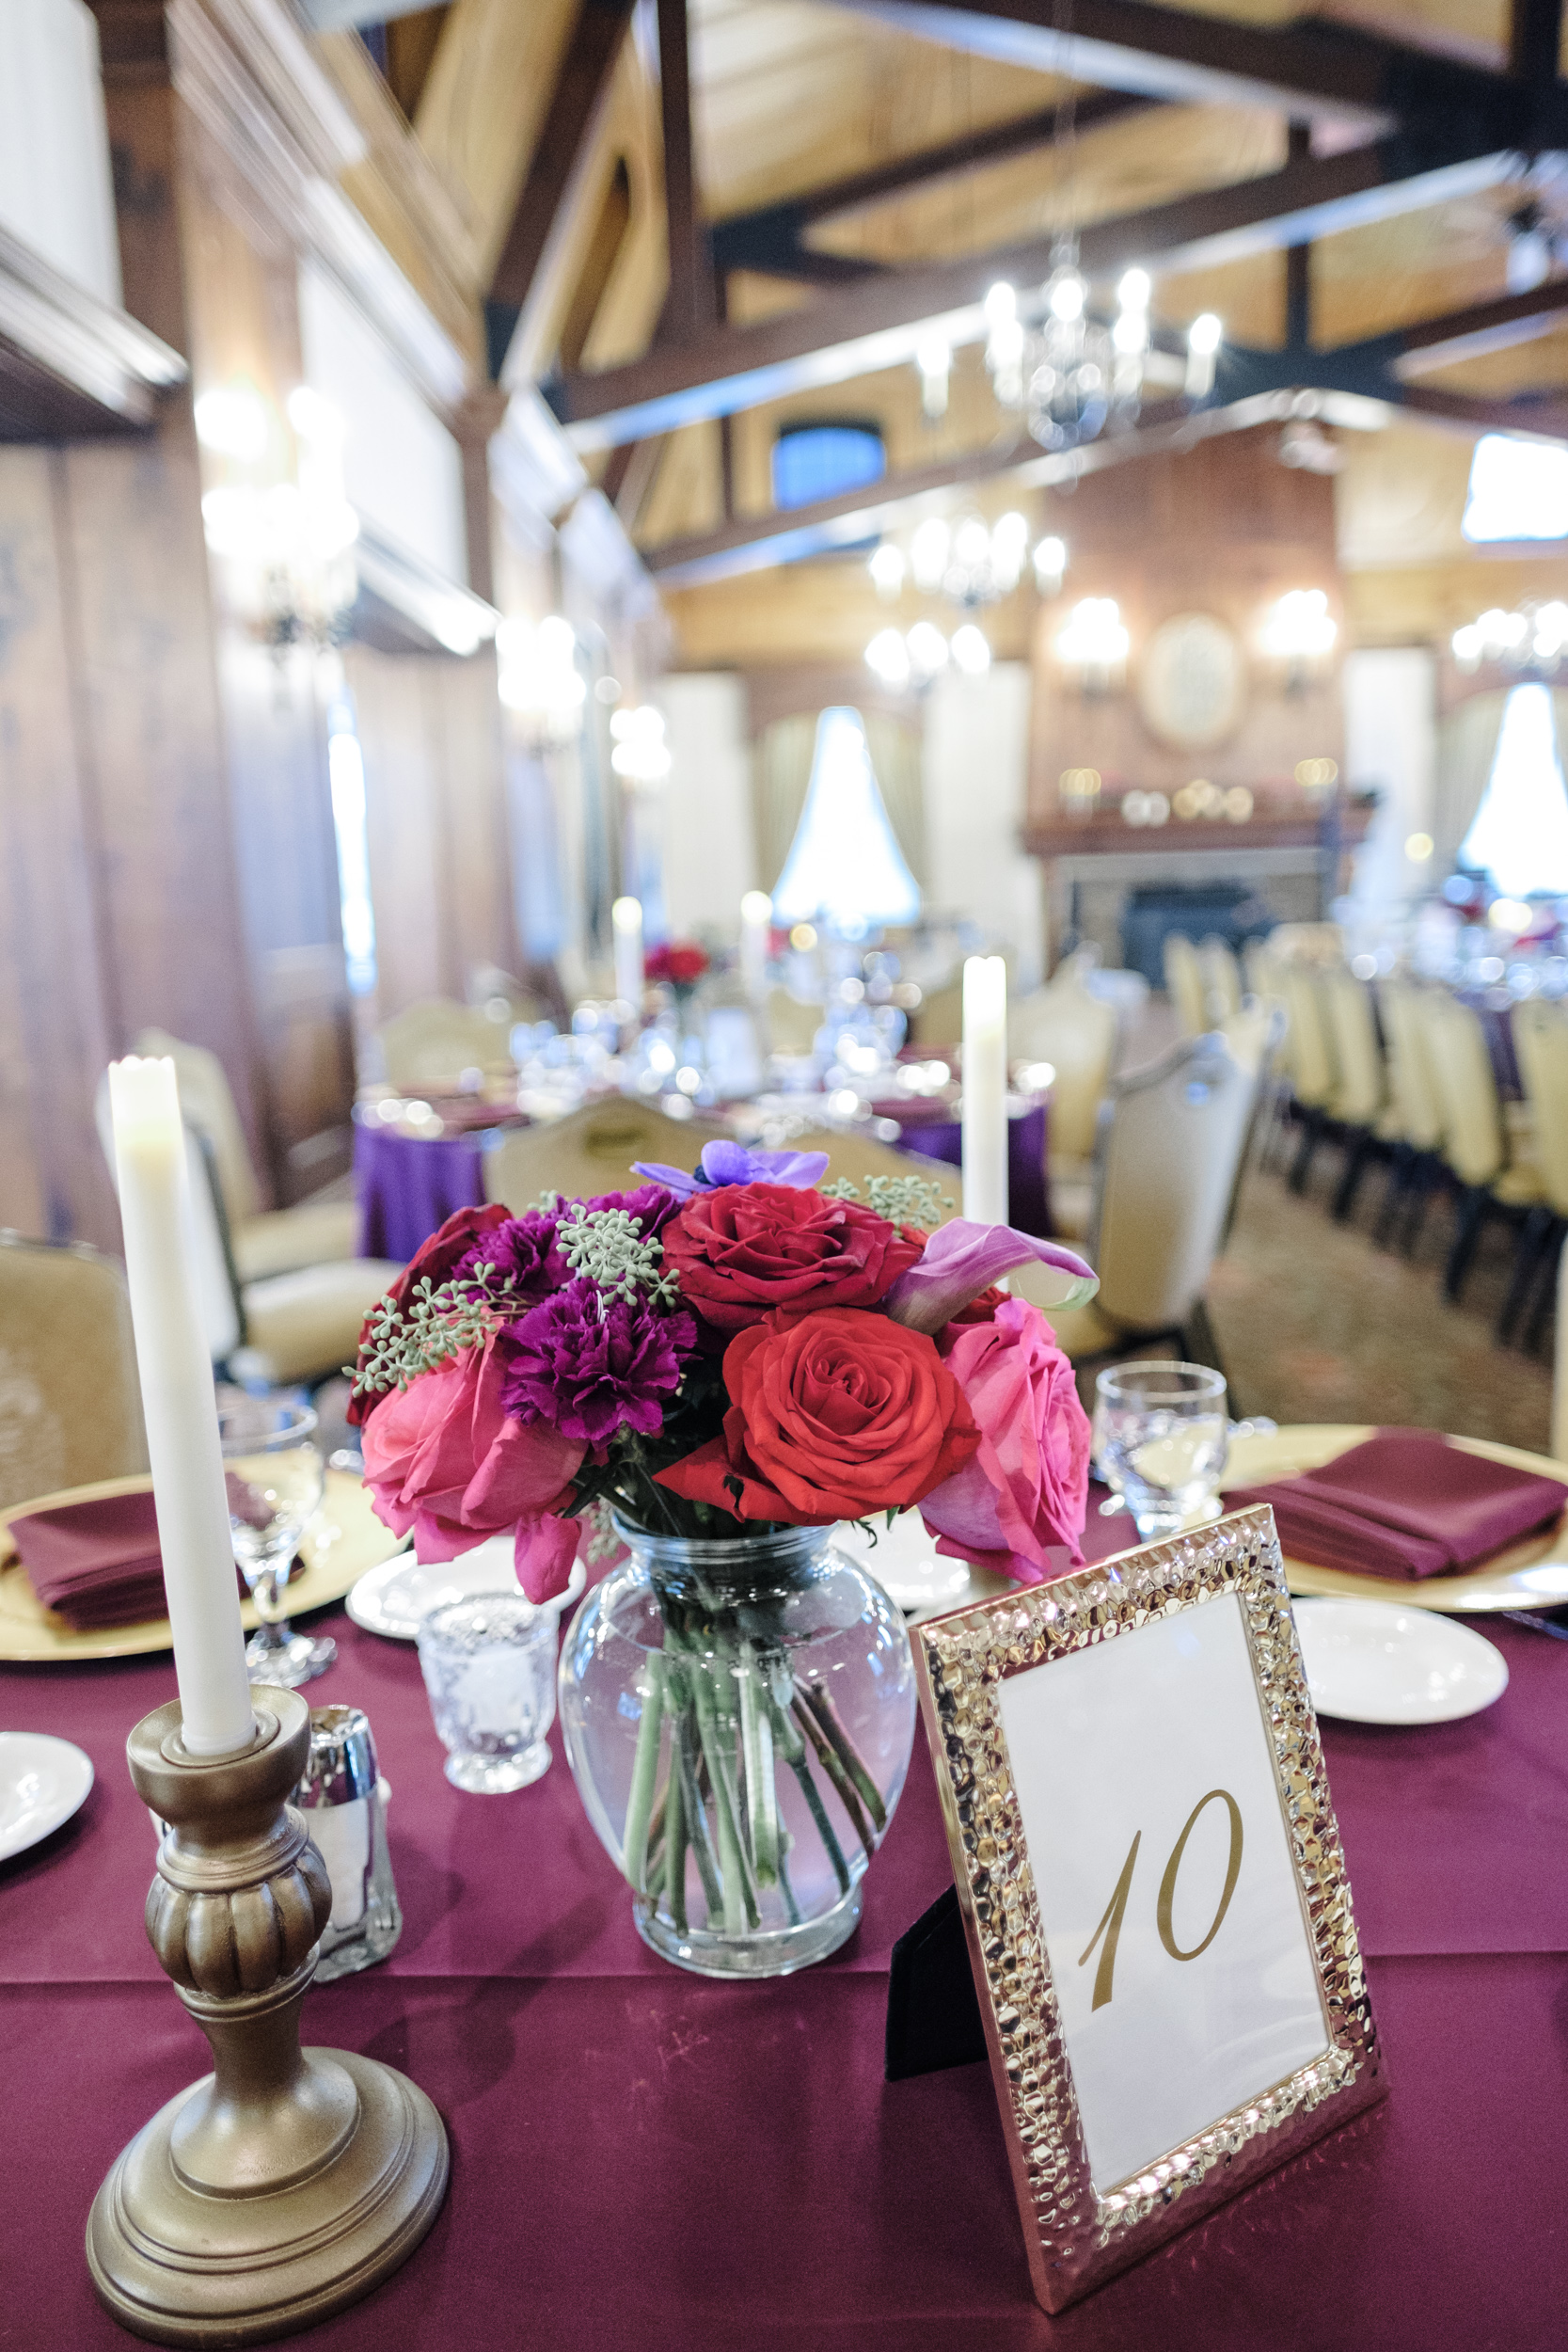 Lavender table cover with florals and candles at cog hill golf club in lemont for wedding